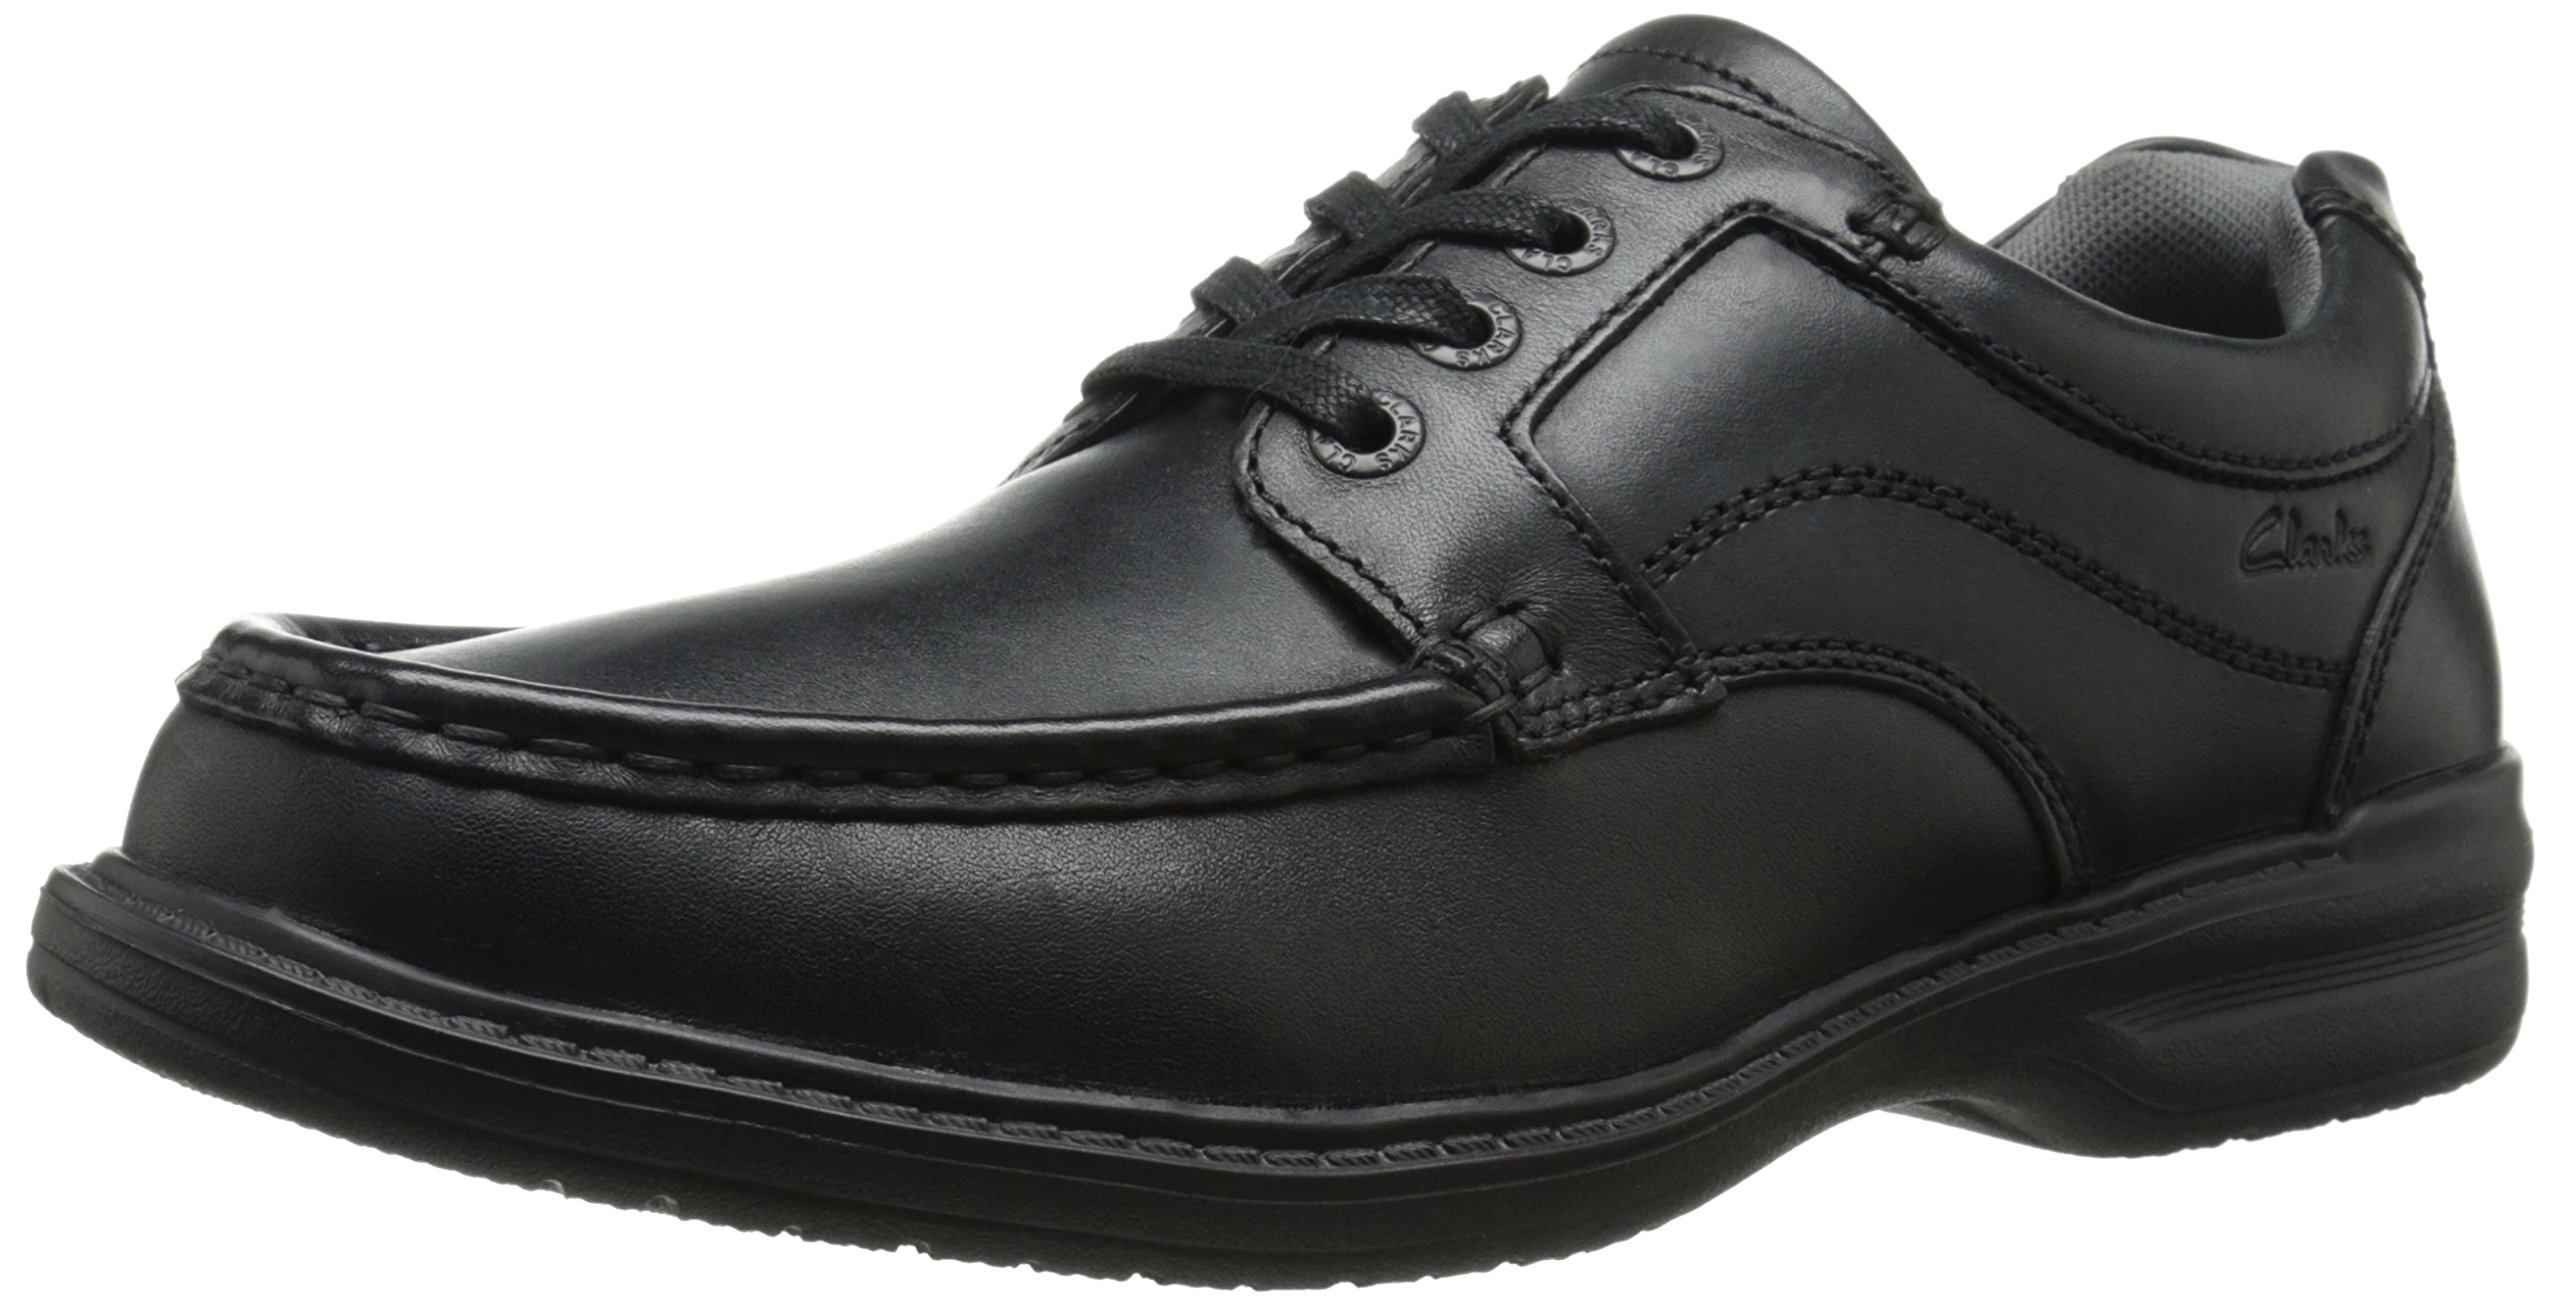 Clarks Men's Keeler Walk Oxford